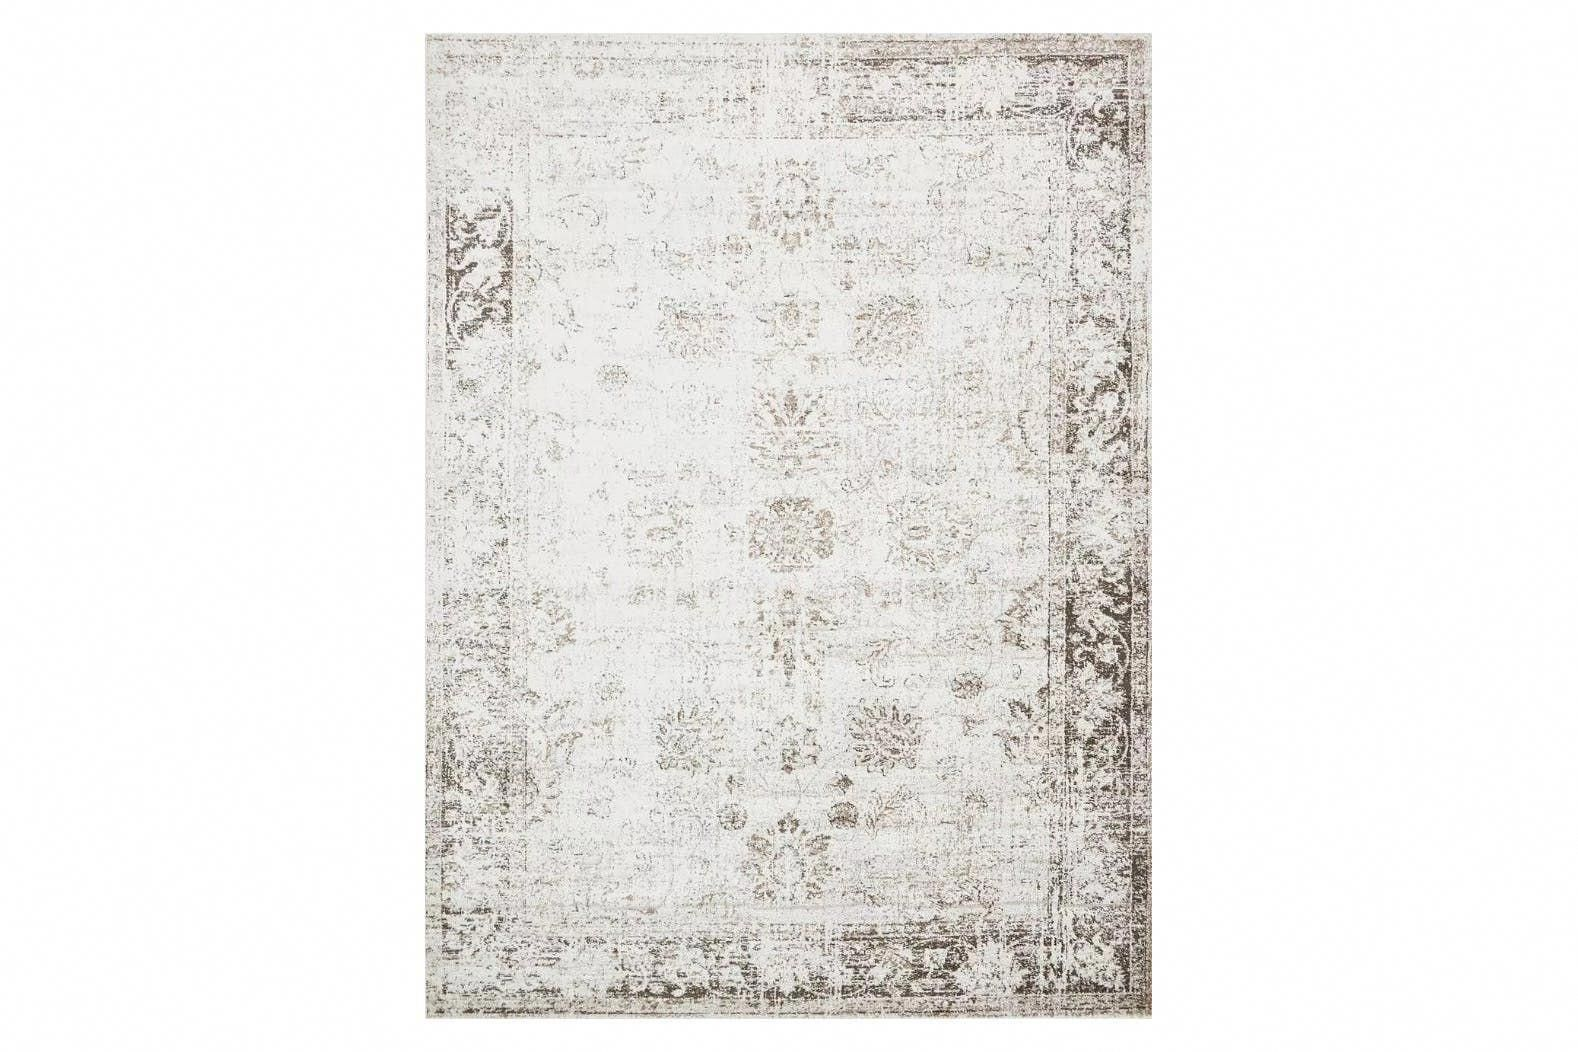 c9eb4437d3d Honestly Affordable Rugs  10 Vintage-Style Finds Under  100 — Cheap Thrills   CarpetsForLess